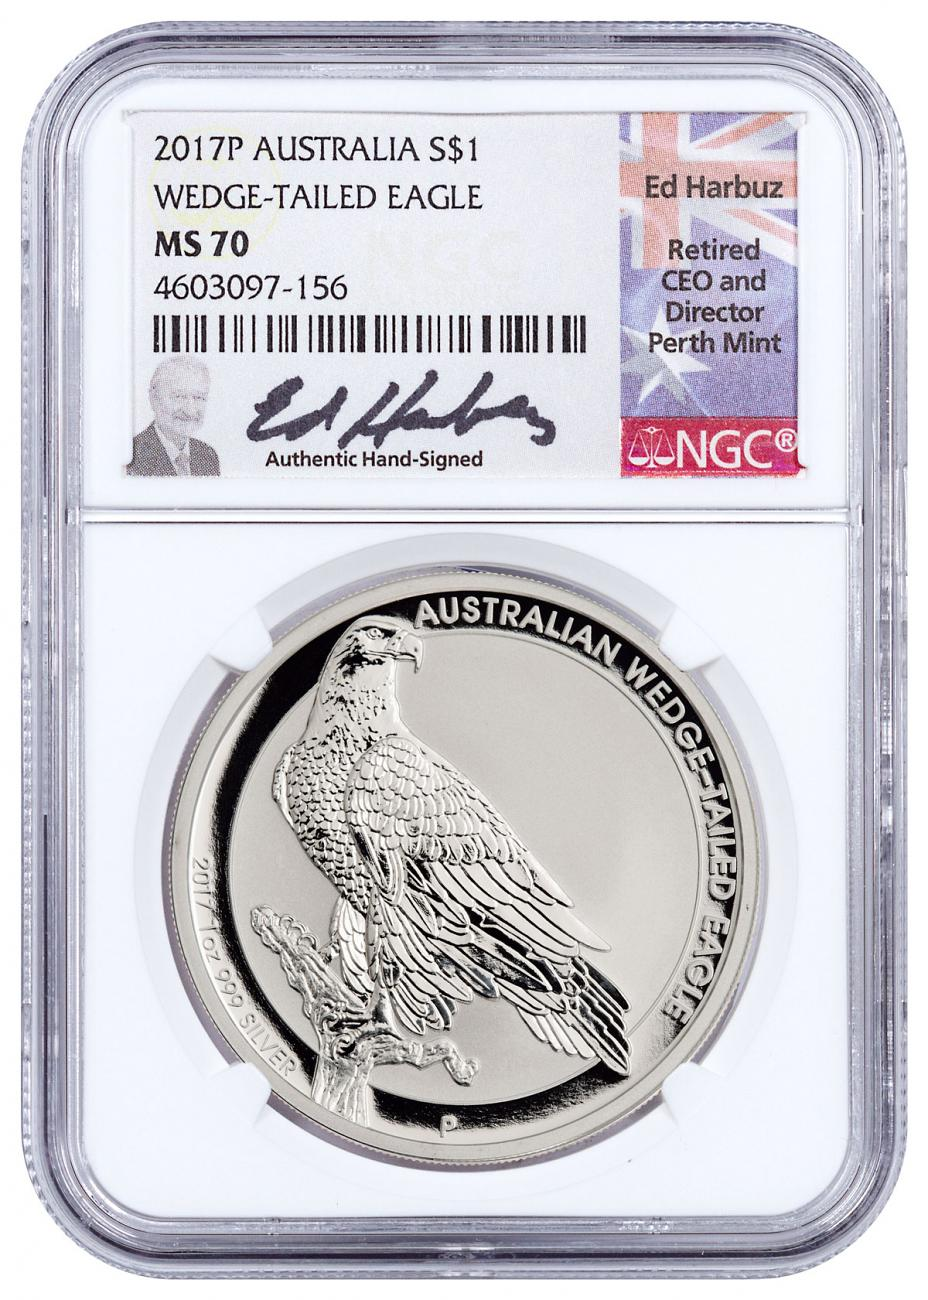 2017-P Australia 1 oz Silver Wedge-Tailed Eagle $1 Coin NGC MS70 Harbuz Signed Label